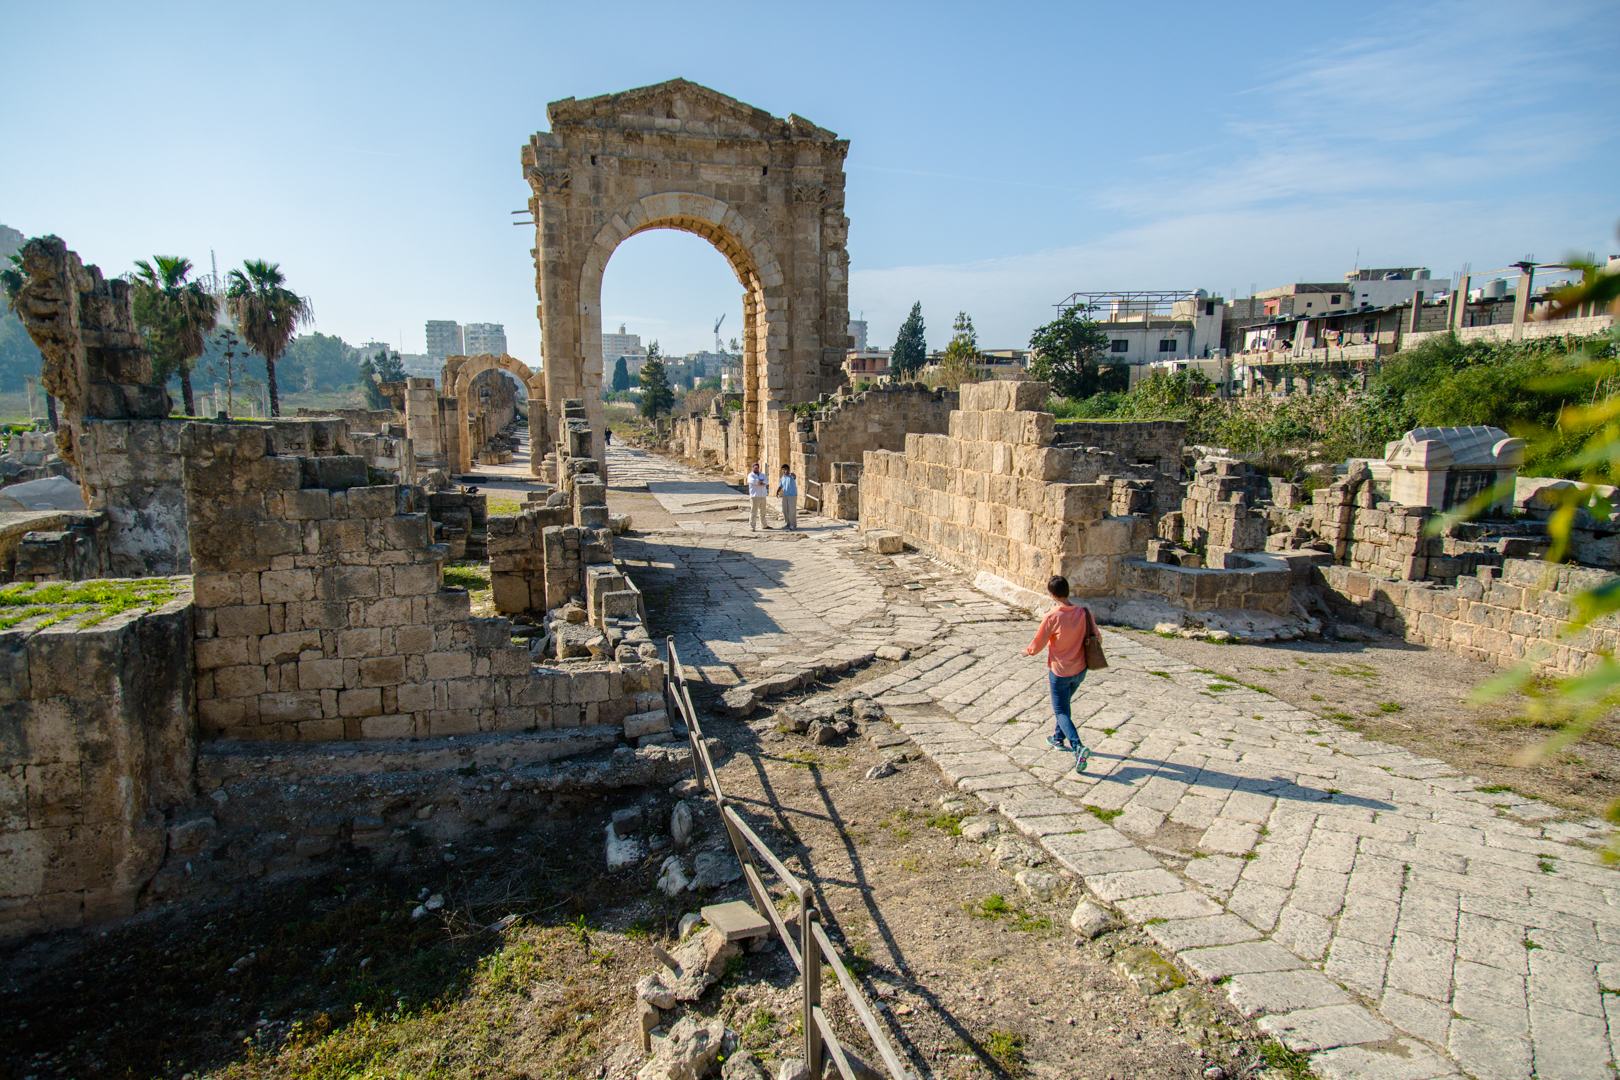 The Triumphal Arch at Tyre